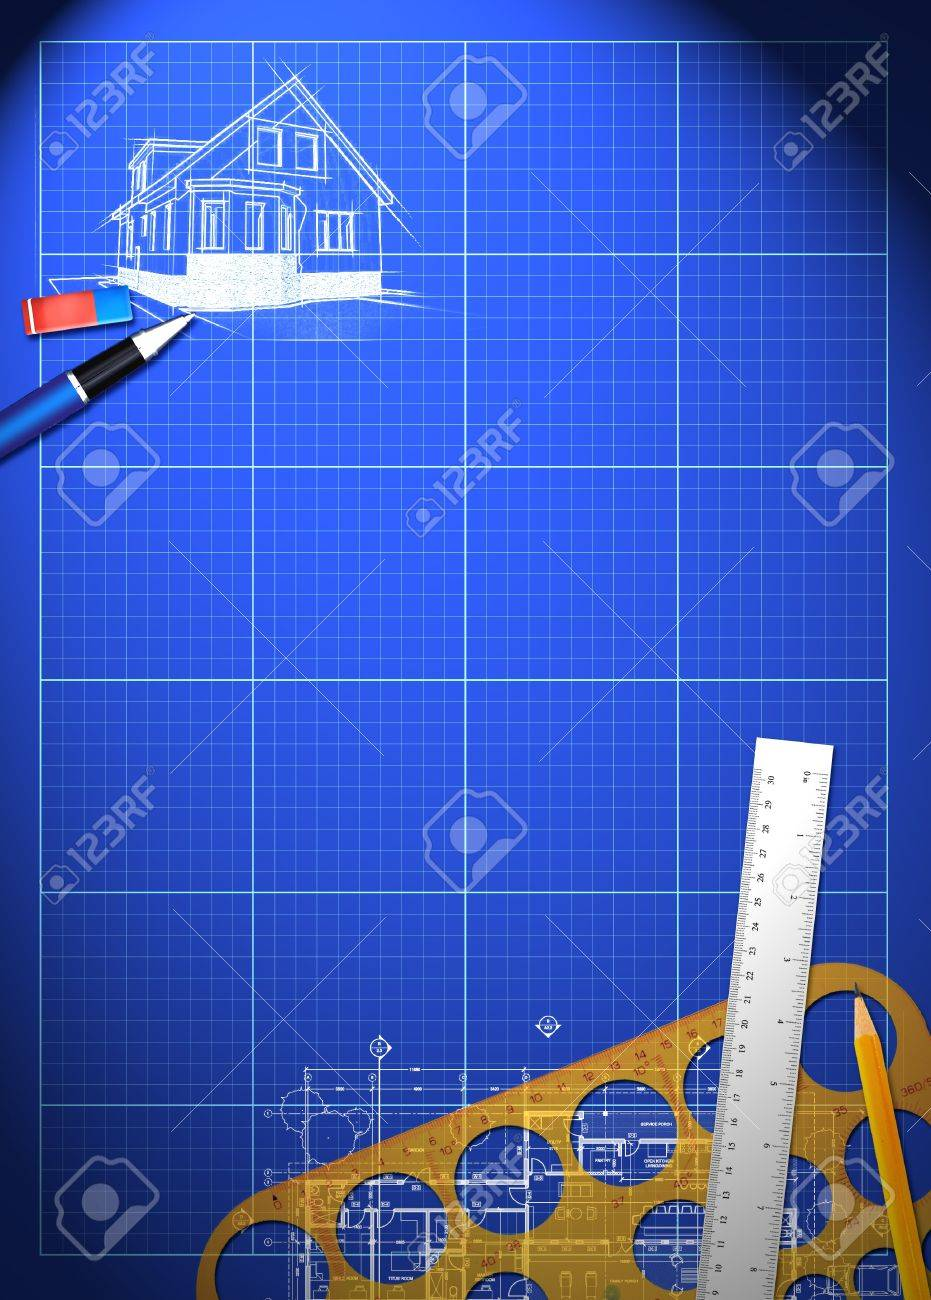 Abstract house blueprint poster background with space stock photo abstract house blueprint poster background with space stock photo 18855548 malvernweather Images